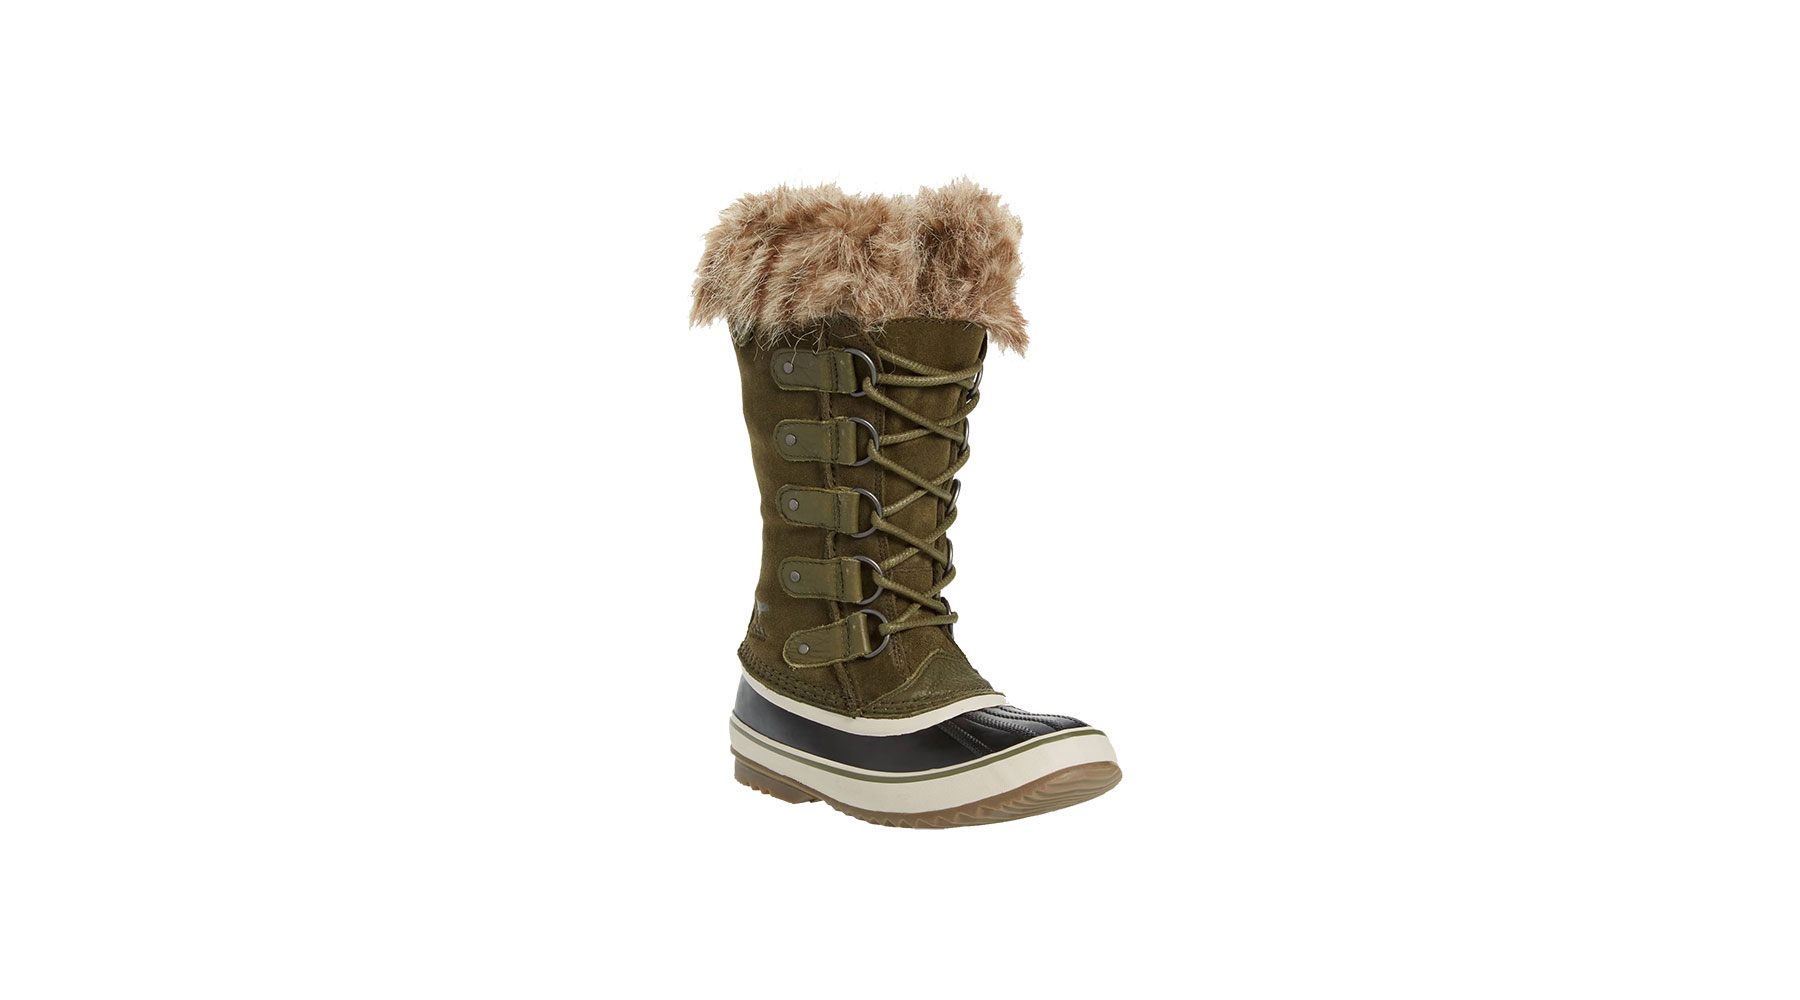 Sorel Joan of Arctic Waterproof Snow Boot